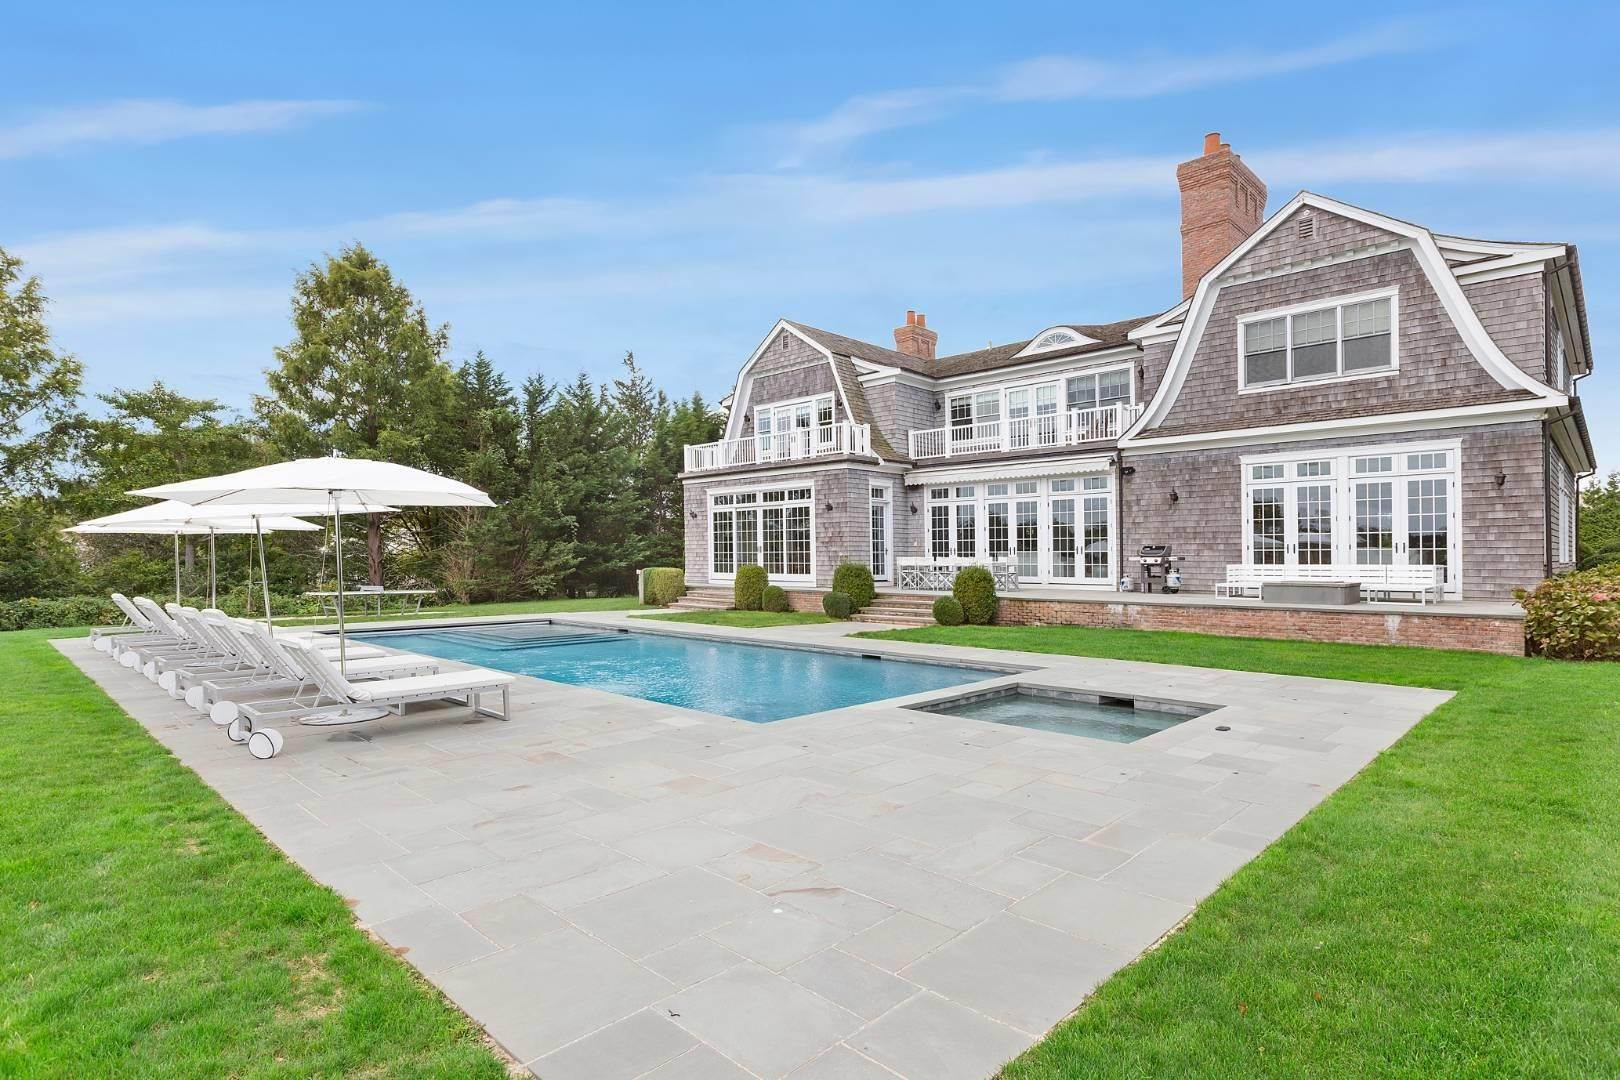 Real Estate at Sagaponack, NY 11962